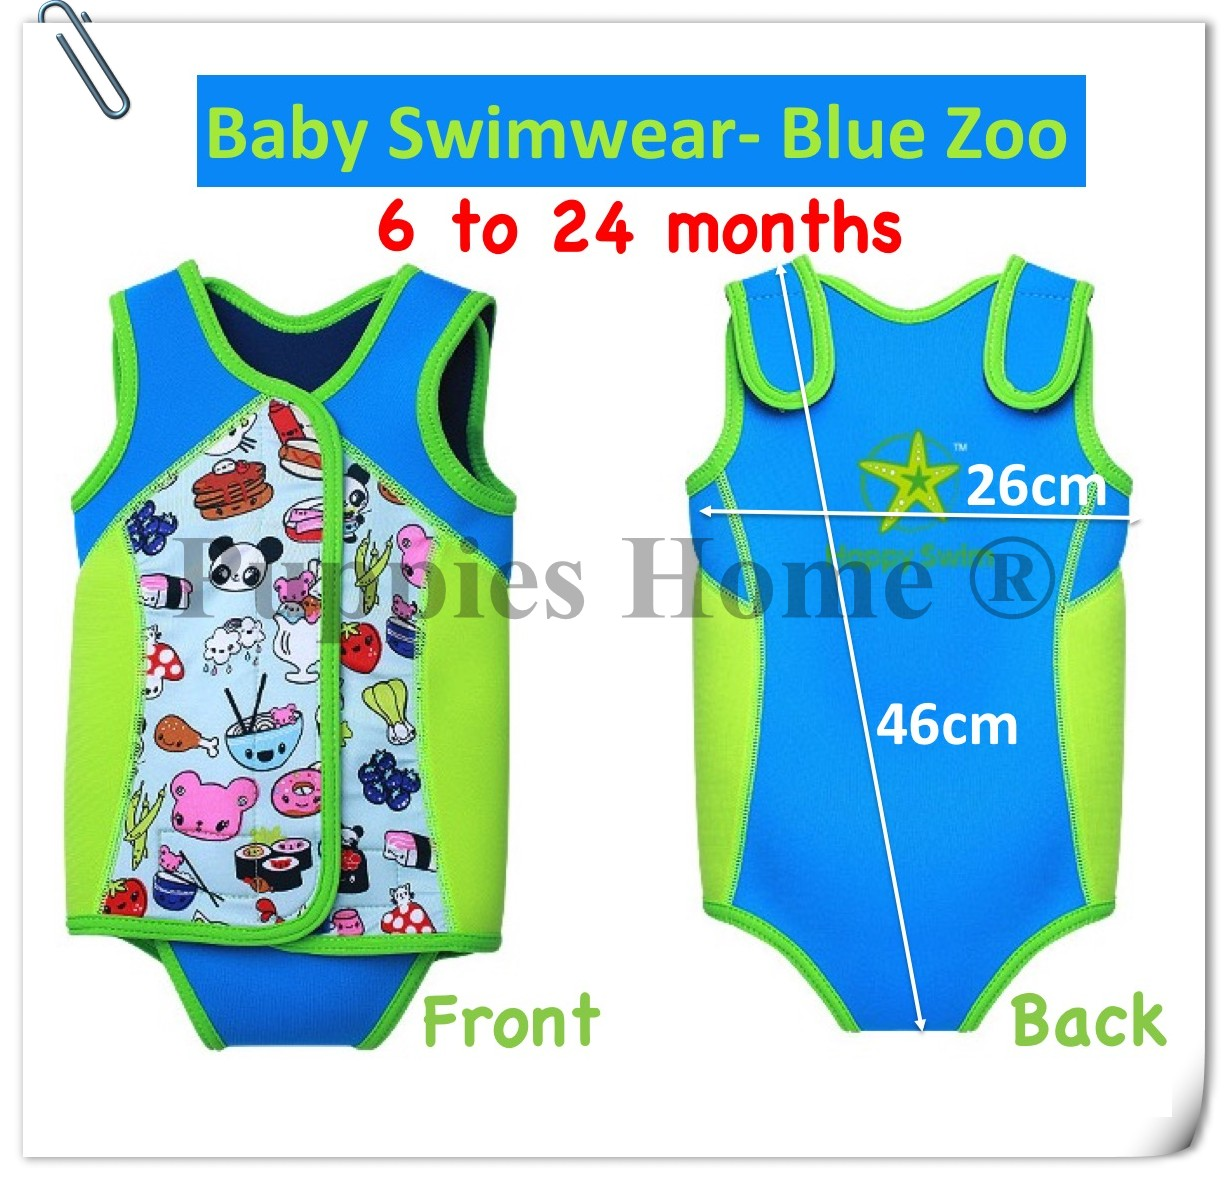 676a51b7ab709 A8*Kids Baby Thermal Swimwear Wetsuits UPF 50+ Snorkeling Diving Keep Warm  Swimsuits Swimming Suit Wear Play Water Sports Activities Children Life  Vest ...